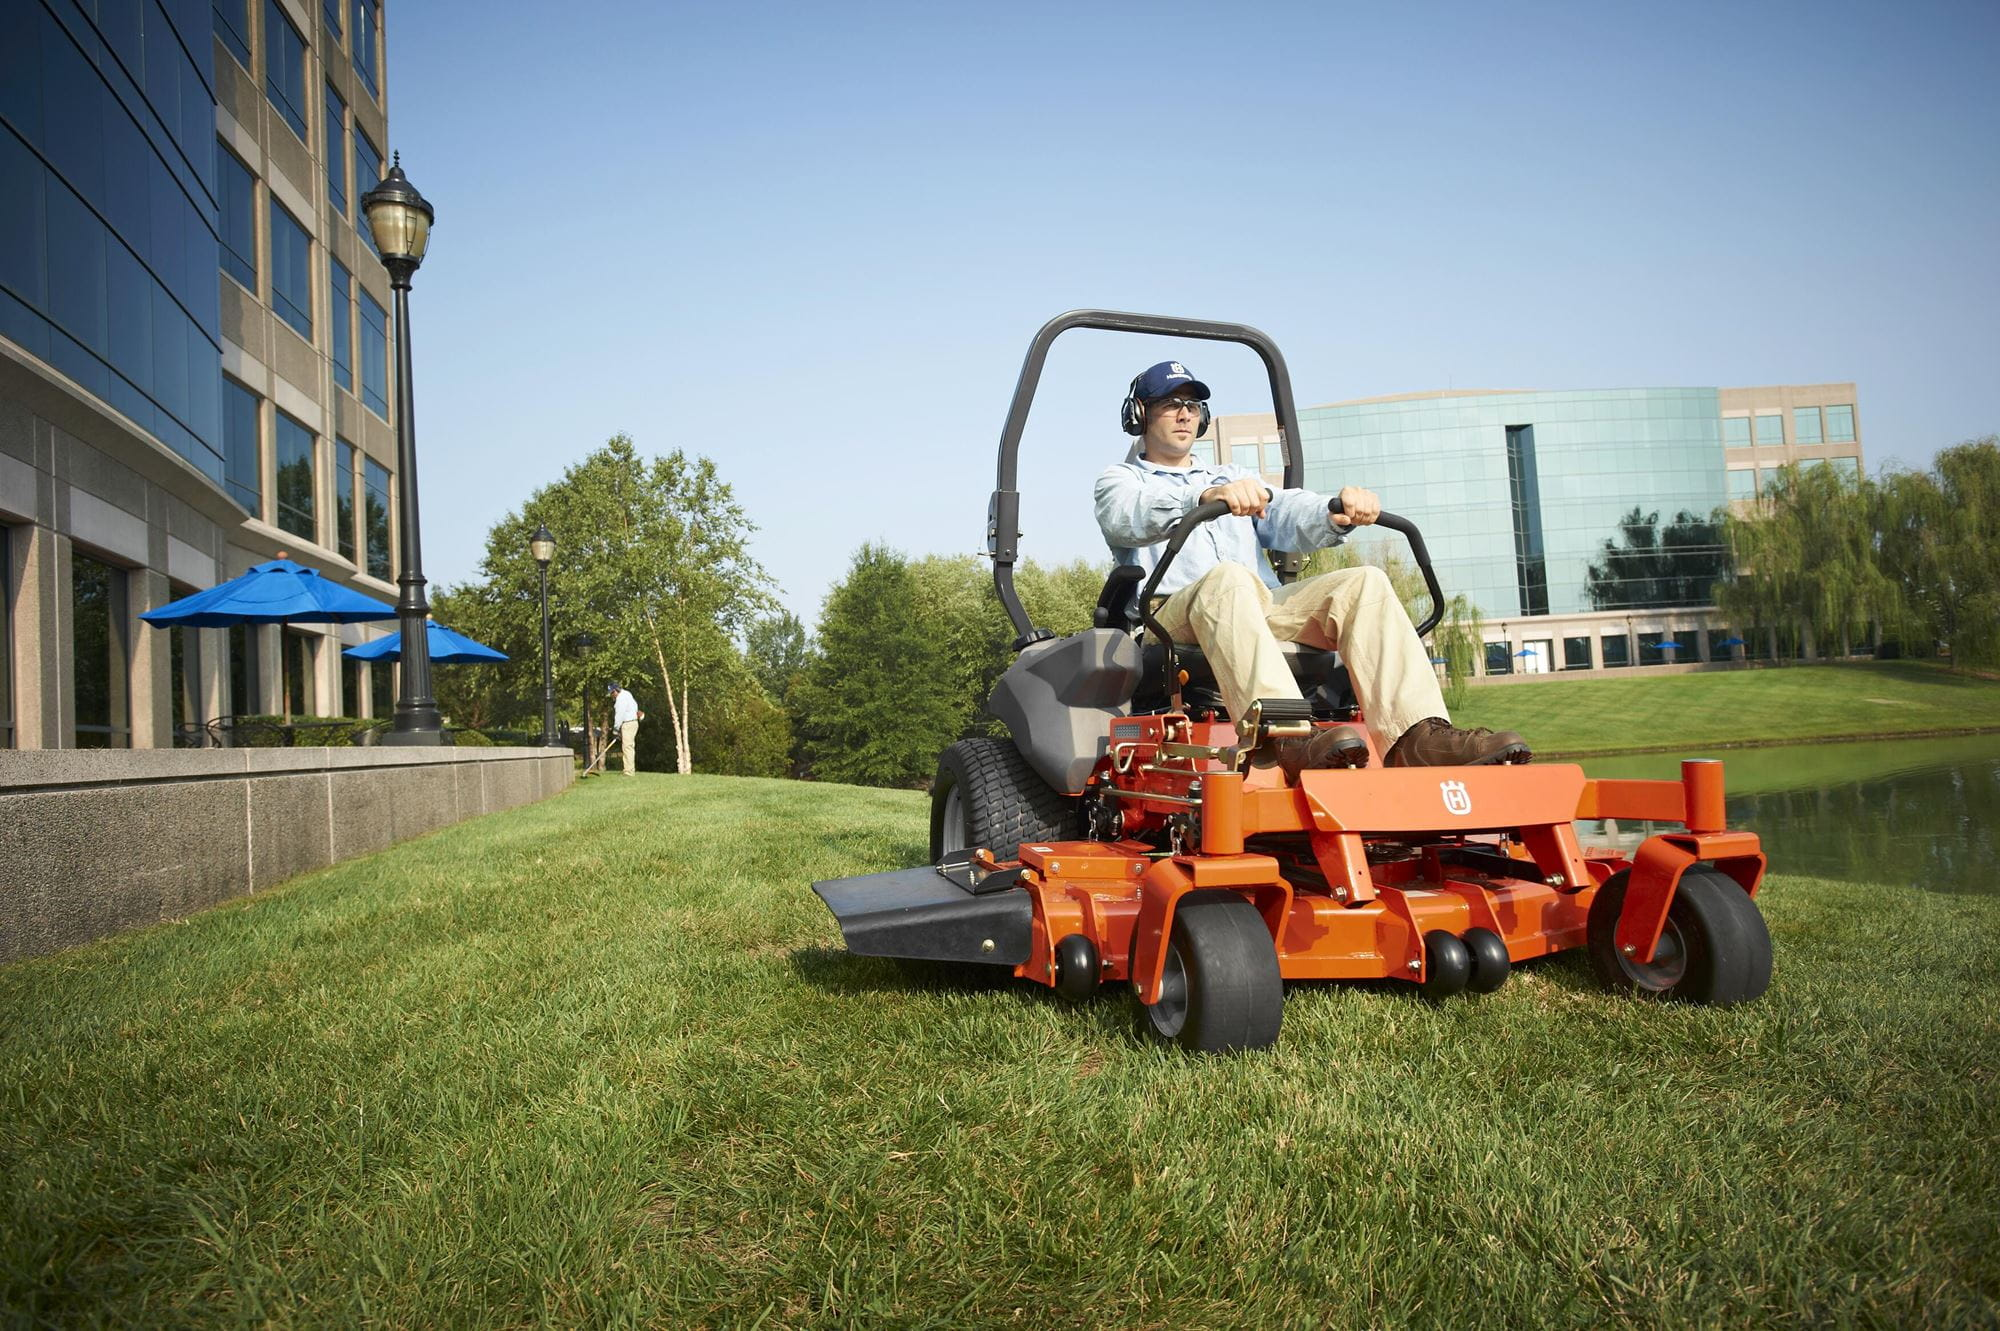 Husqvarna Zero-Turn Mowers are durable, with a large steel tube chassis and powerful engines